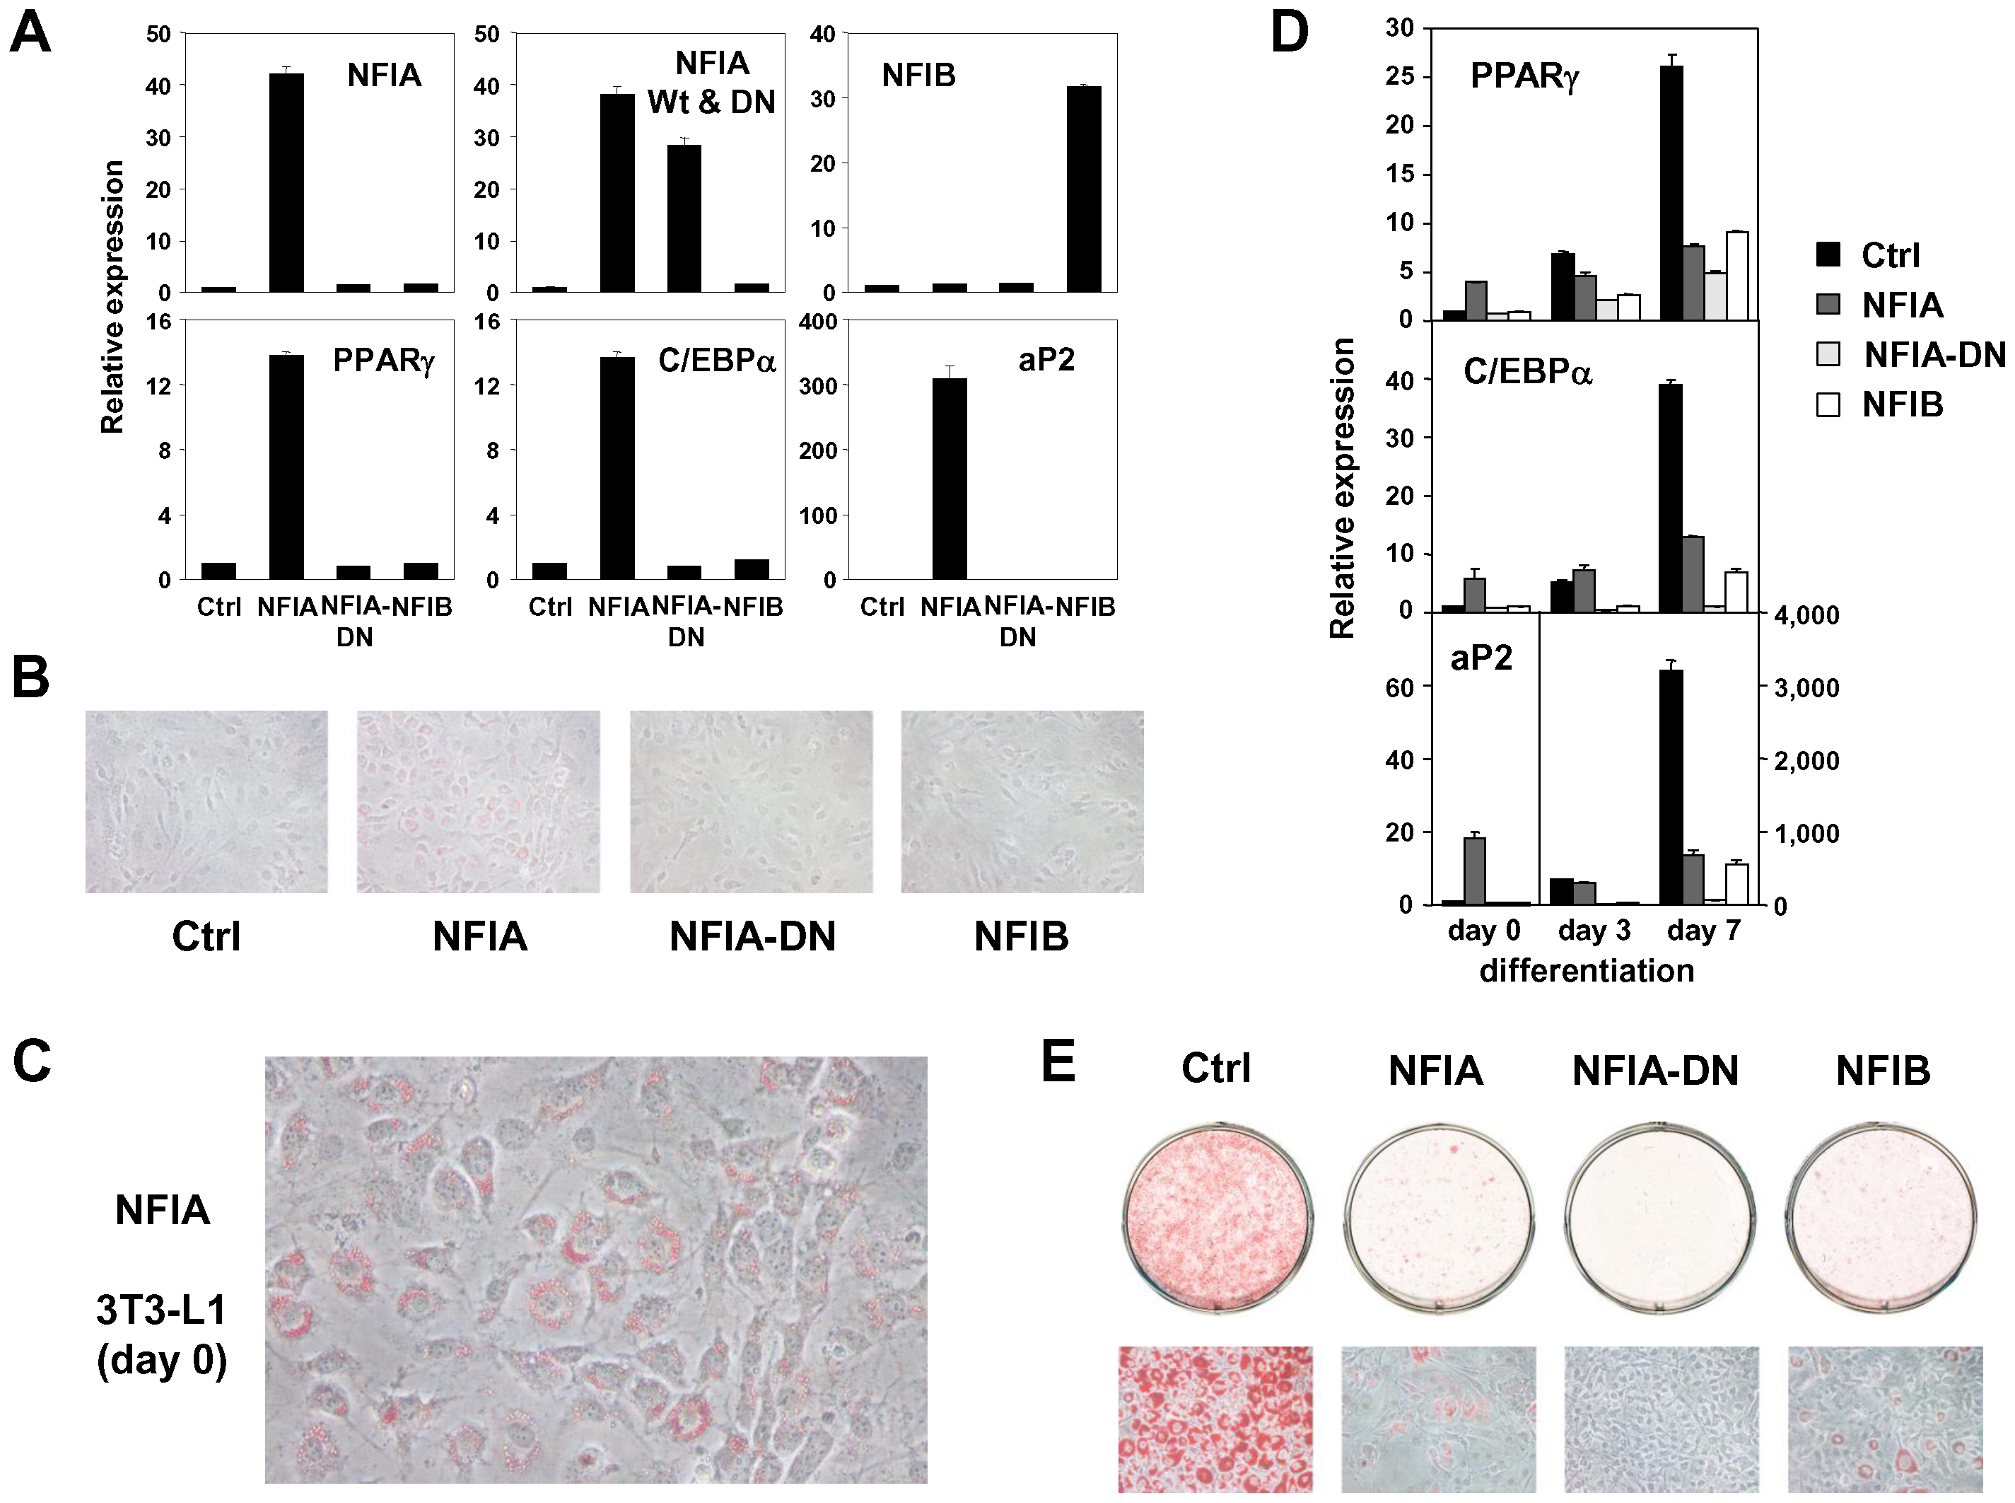 Overexpression of NFIA, NFIB, and dominant negative NFIA in 3T3-L1 cells.